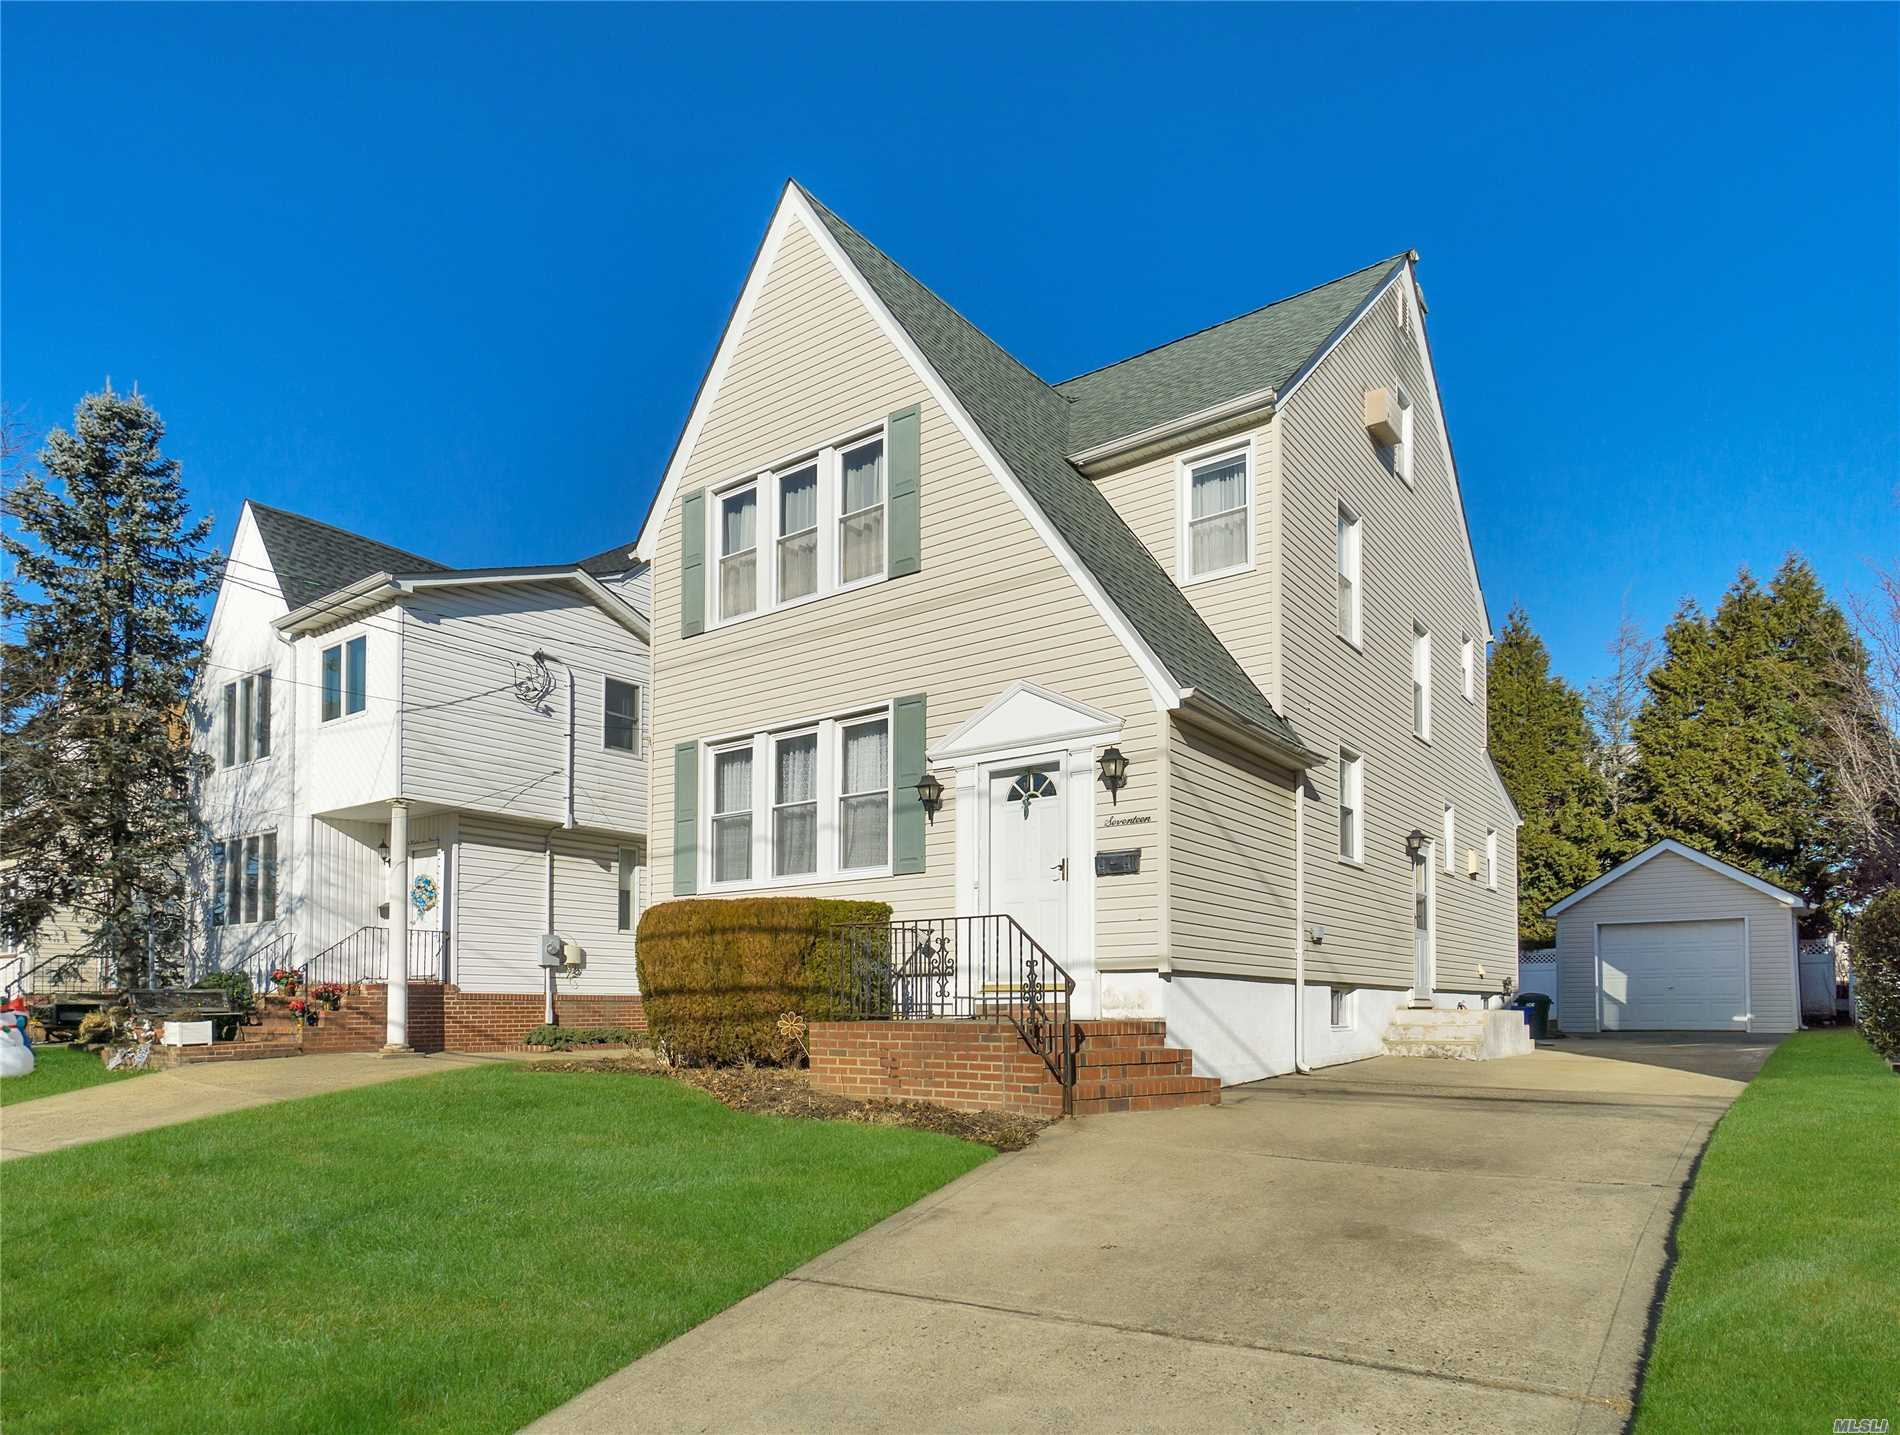 Beautiful Old Style Colonial House With Original Hardwood Floors Preserved Under Carpeting For Over 30 Years. Oversized Rooms With Plenty Of Storage Space And Full Finished Attic Including Eve Storage, Full Finished Basement, Siding Roof And Plumbing Ten Years Young. Gas In House For Stove Hook Up.